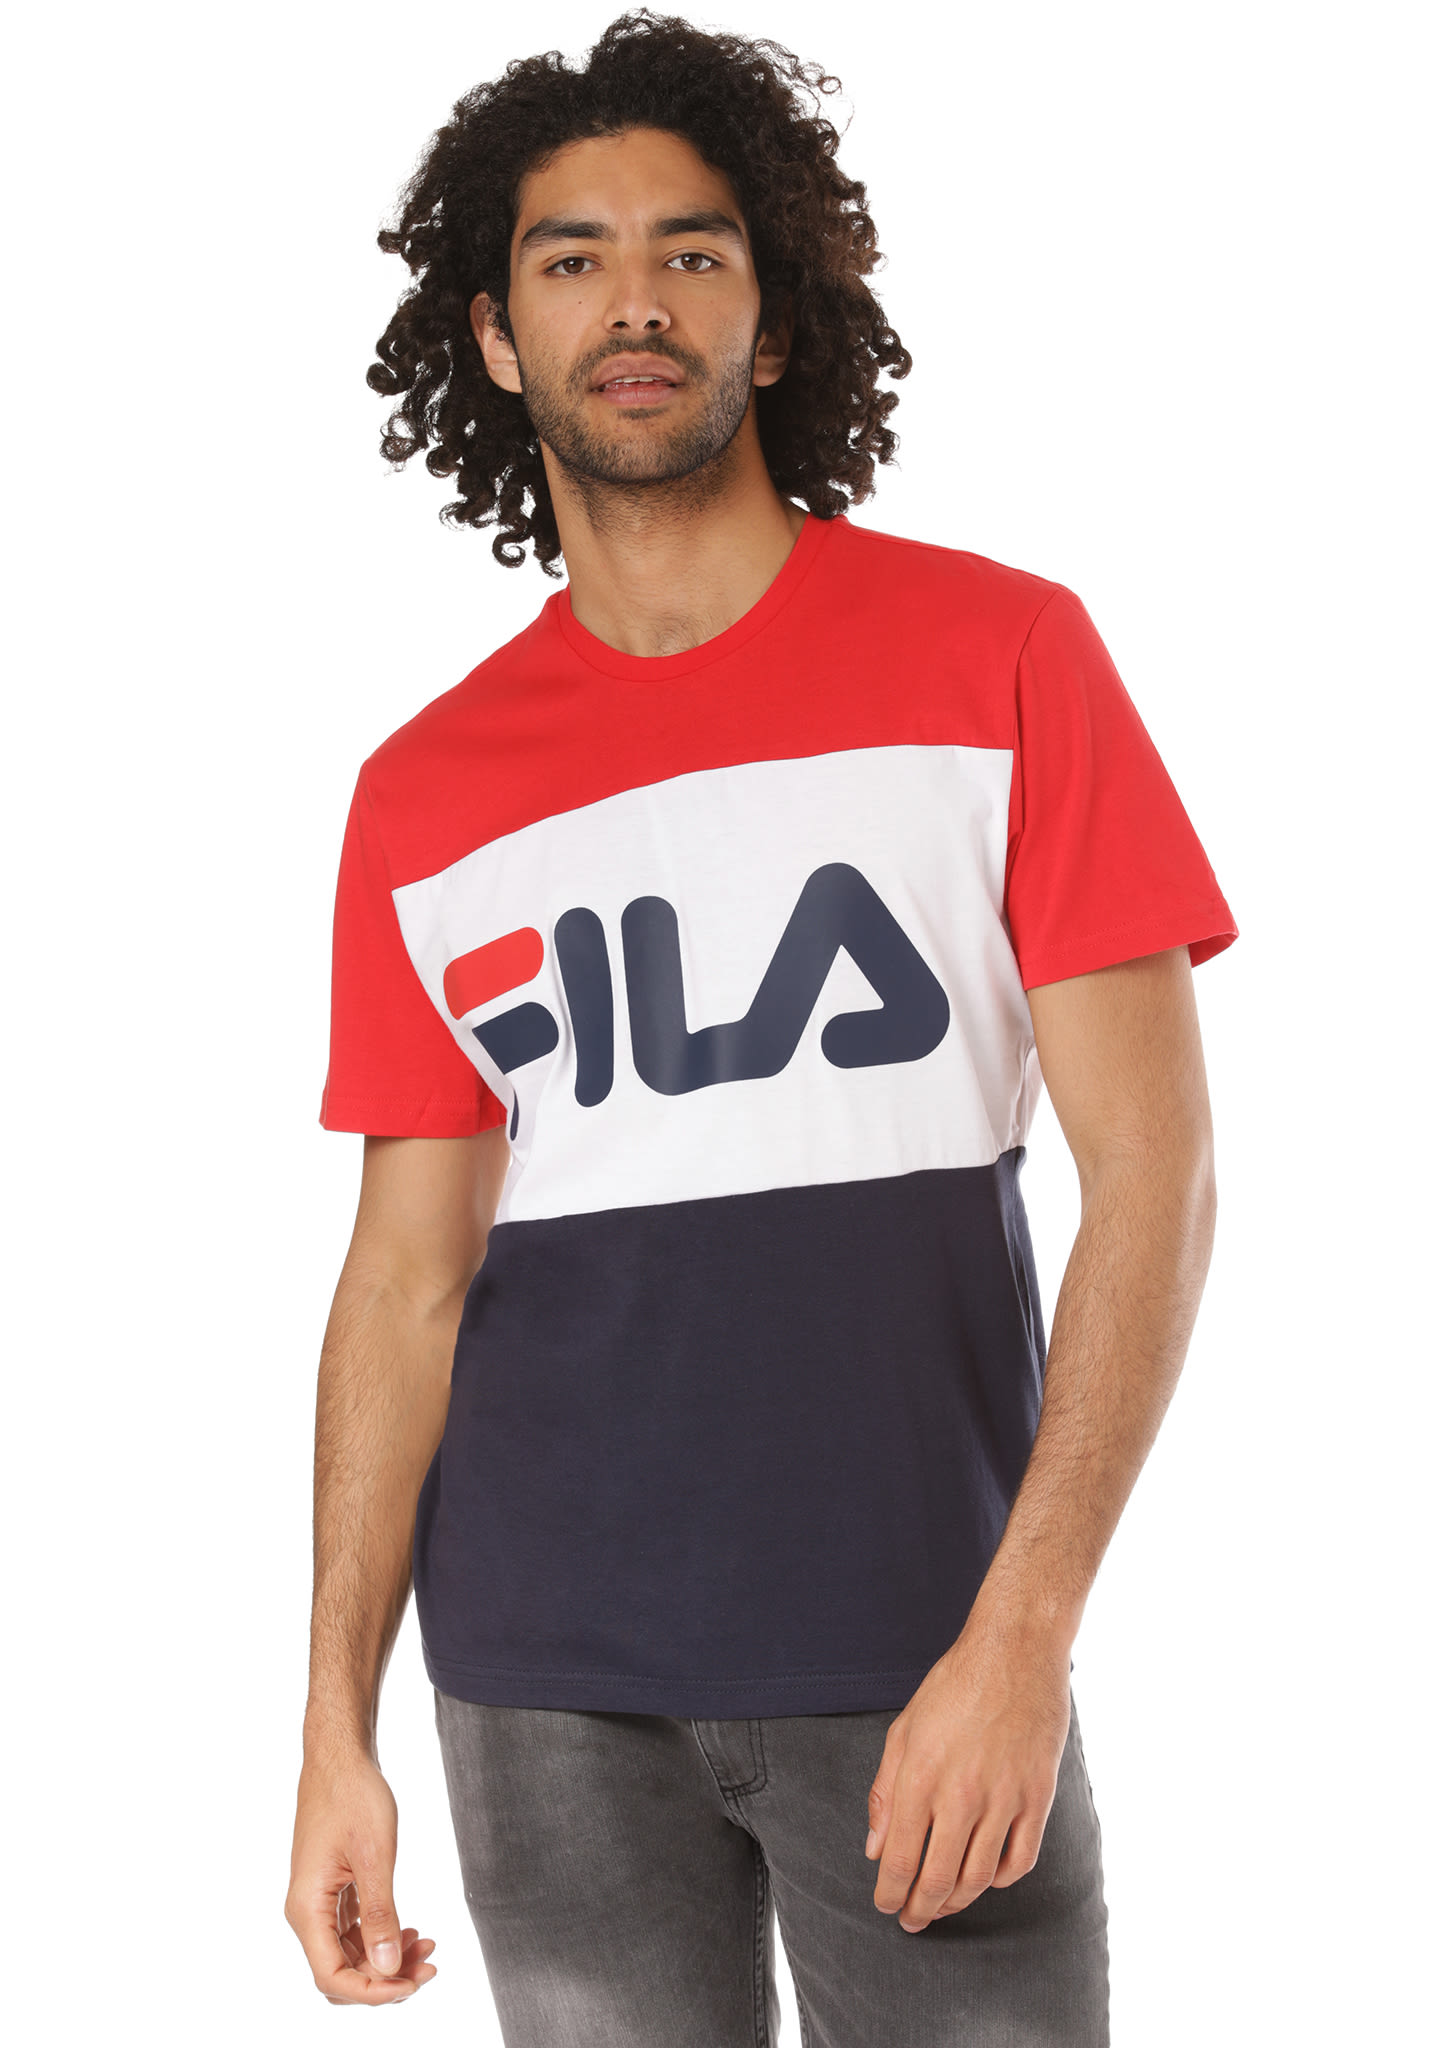 57c45520fbd Fila Urban Line Day - T-shirt voor Heren - Blauw - Planet Sports